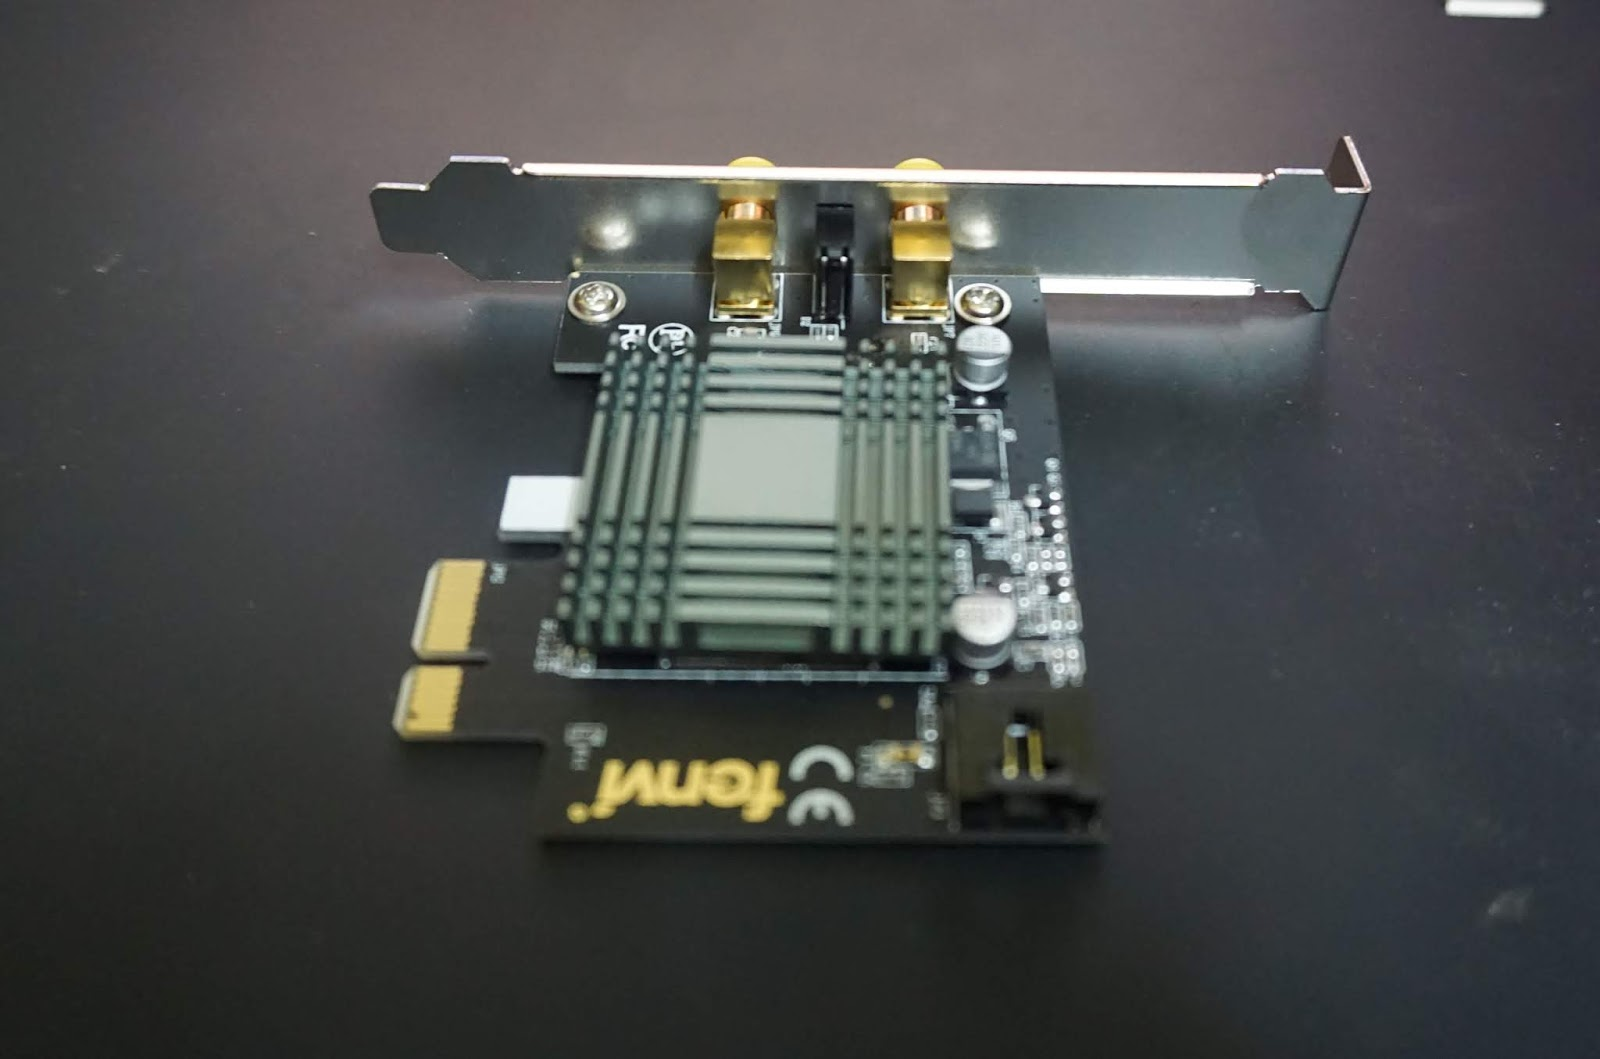 Dual Wifi + Bluetooth 5 0 Adapter for Desktops - Dawn of Things